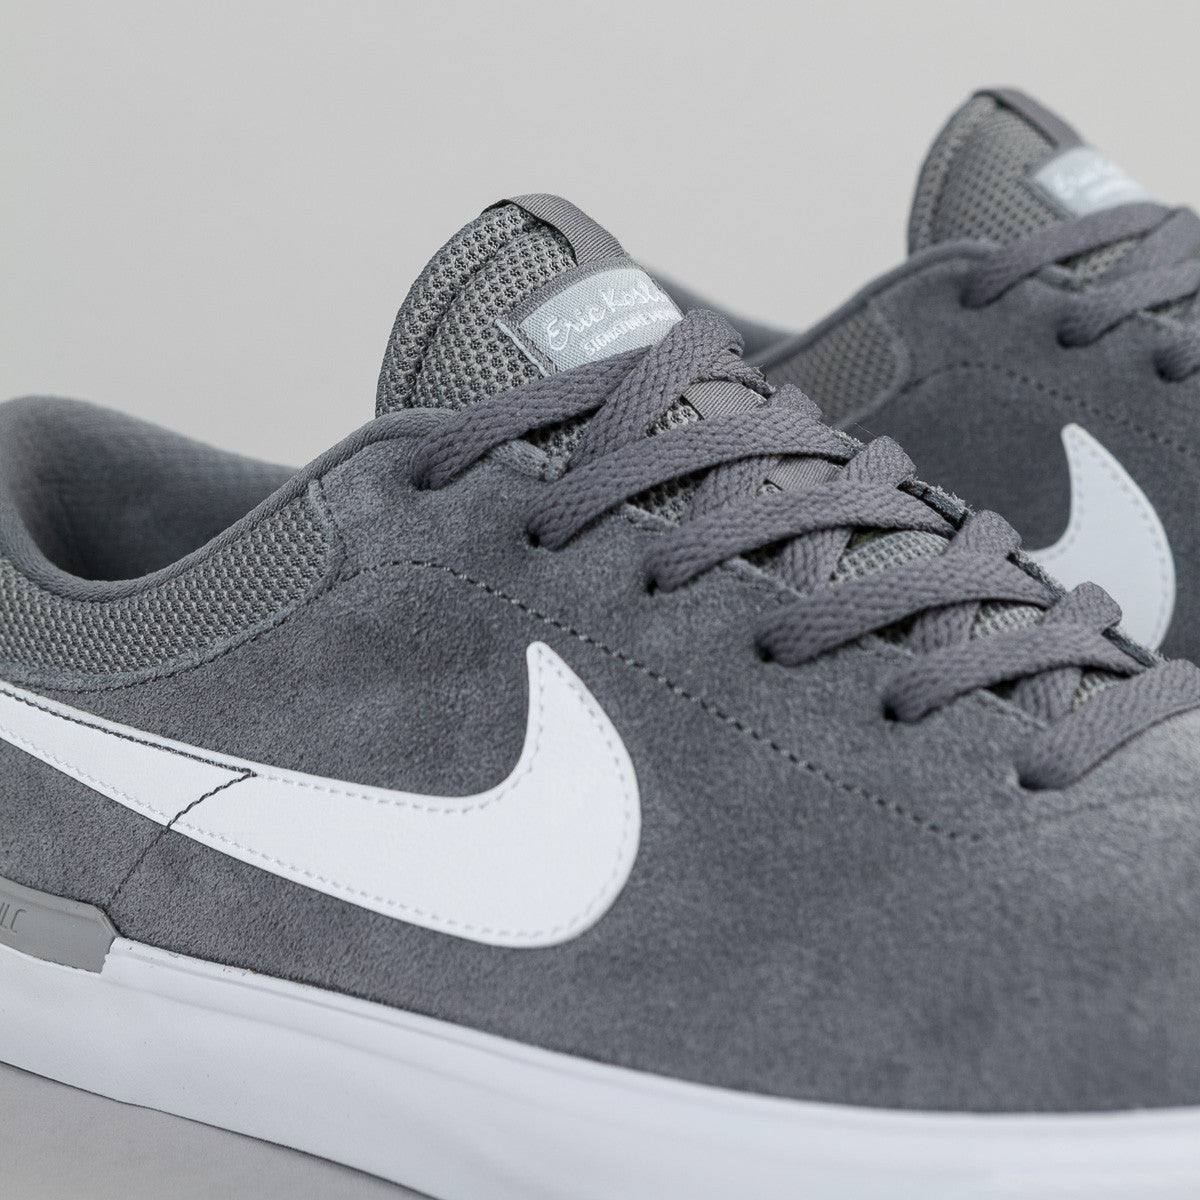 Nike SB Koston Hypervulc Shoes - Cool Grey / White - Wolf Grey